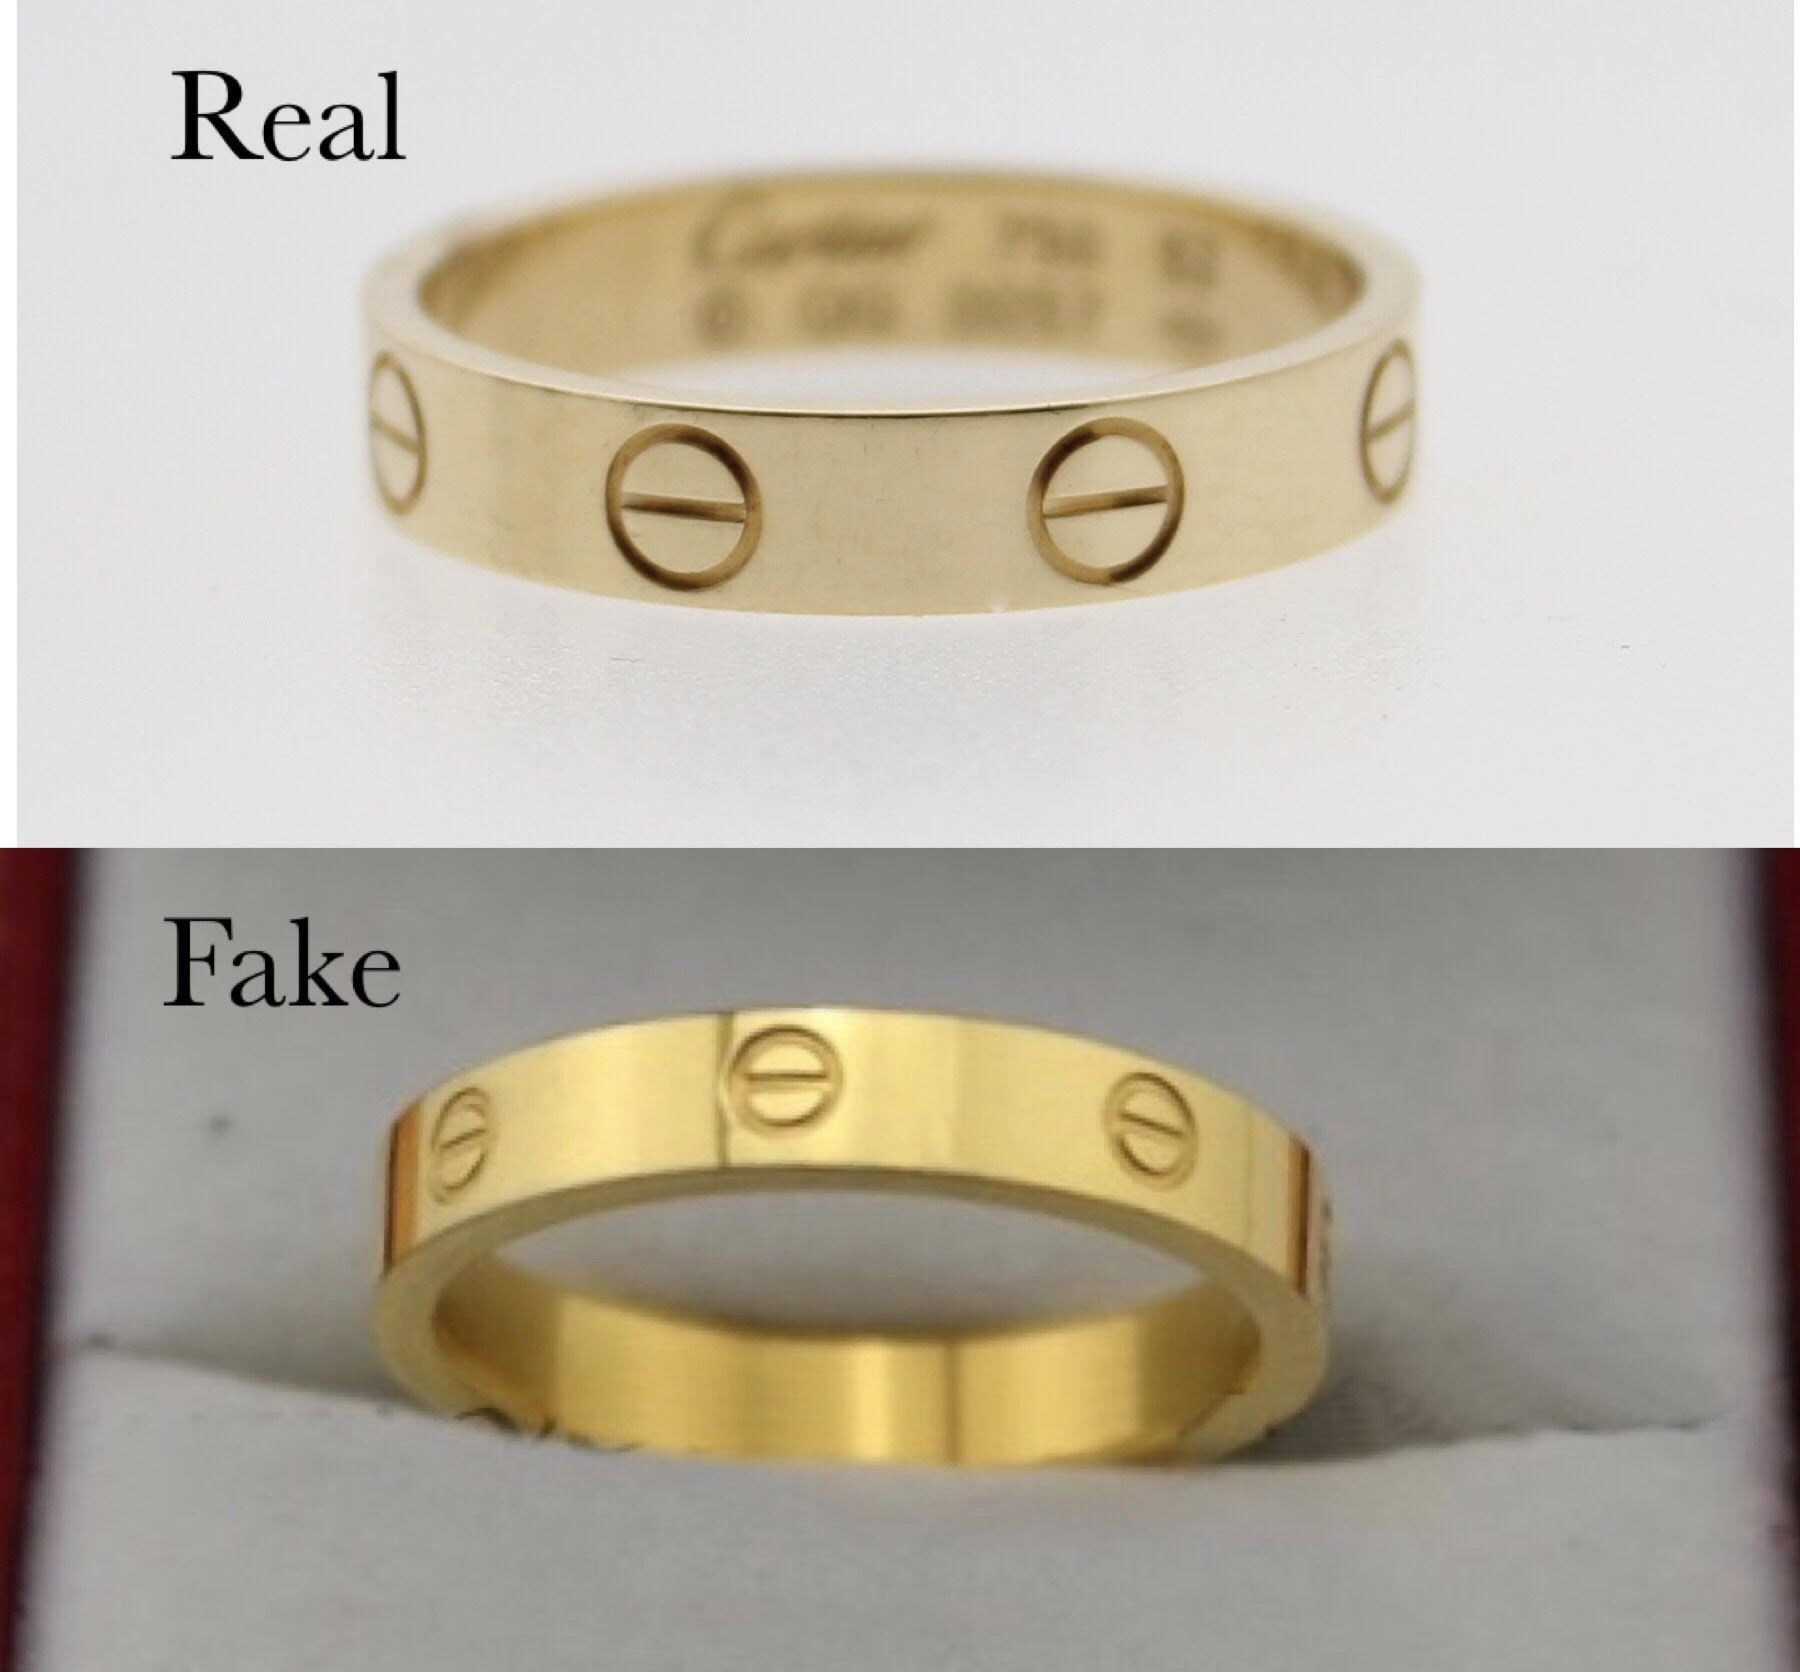 How To Spot A Fake Cartier Love Ring Brands Blogger